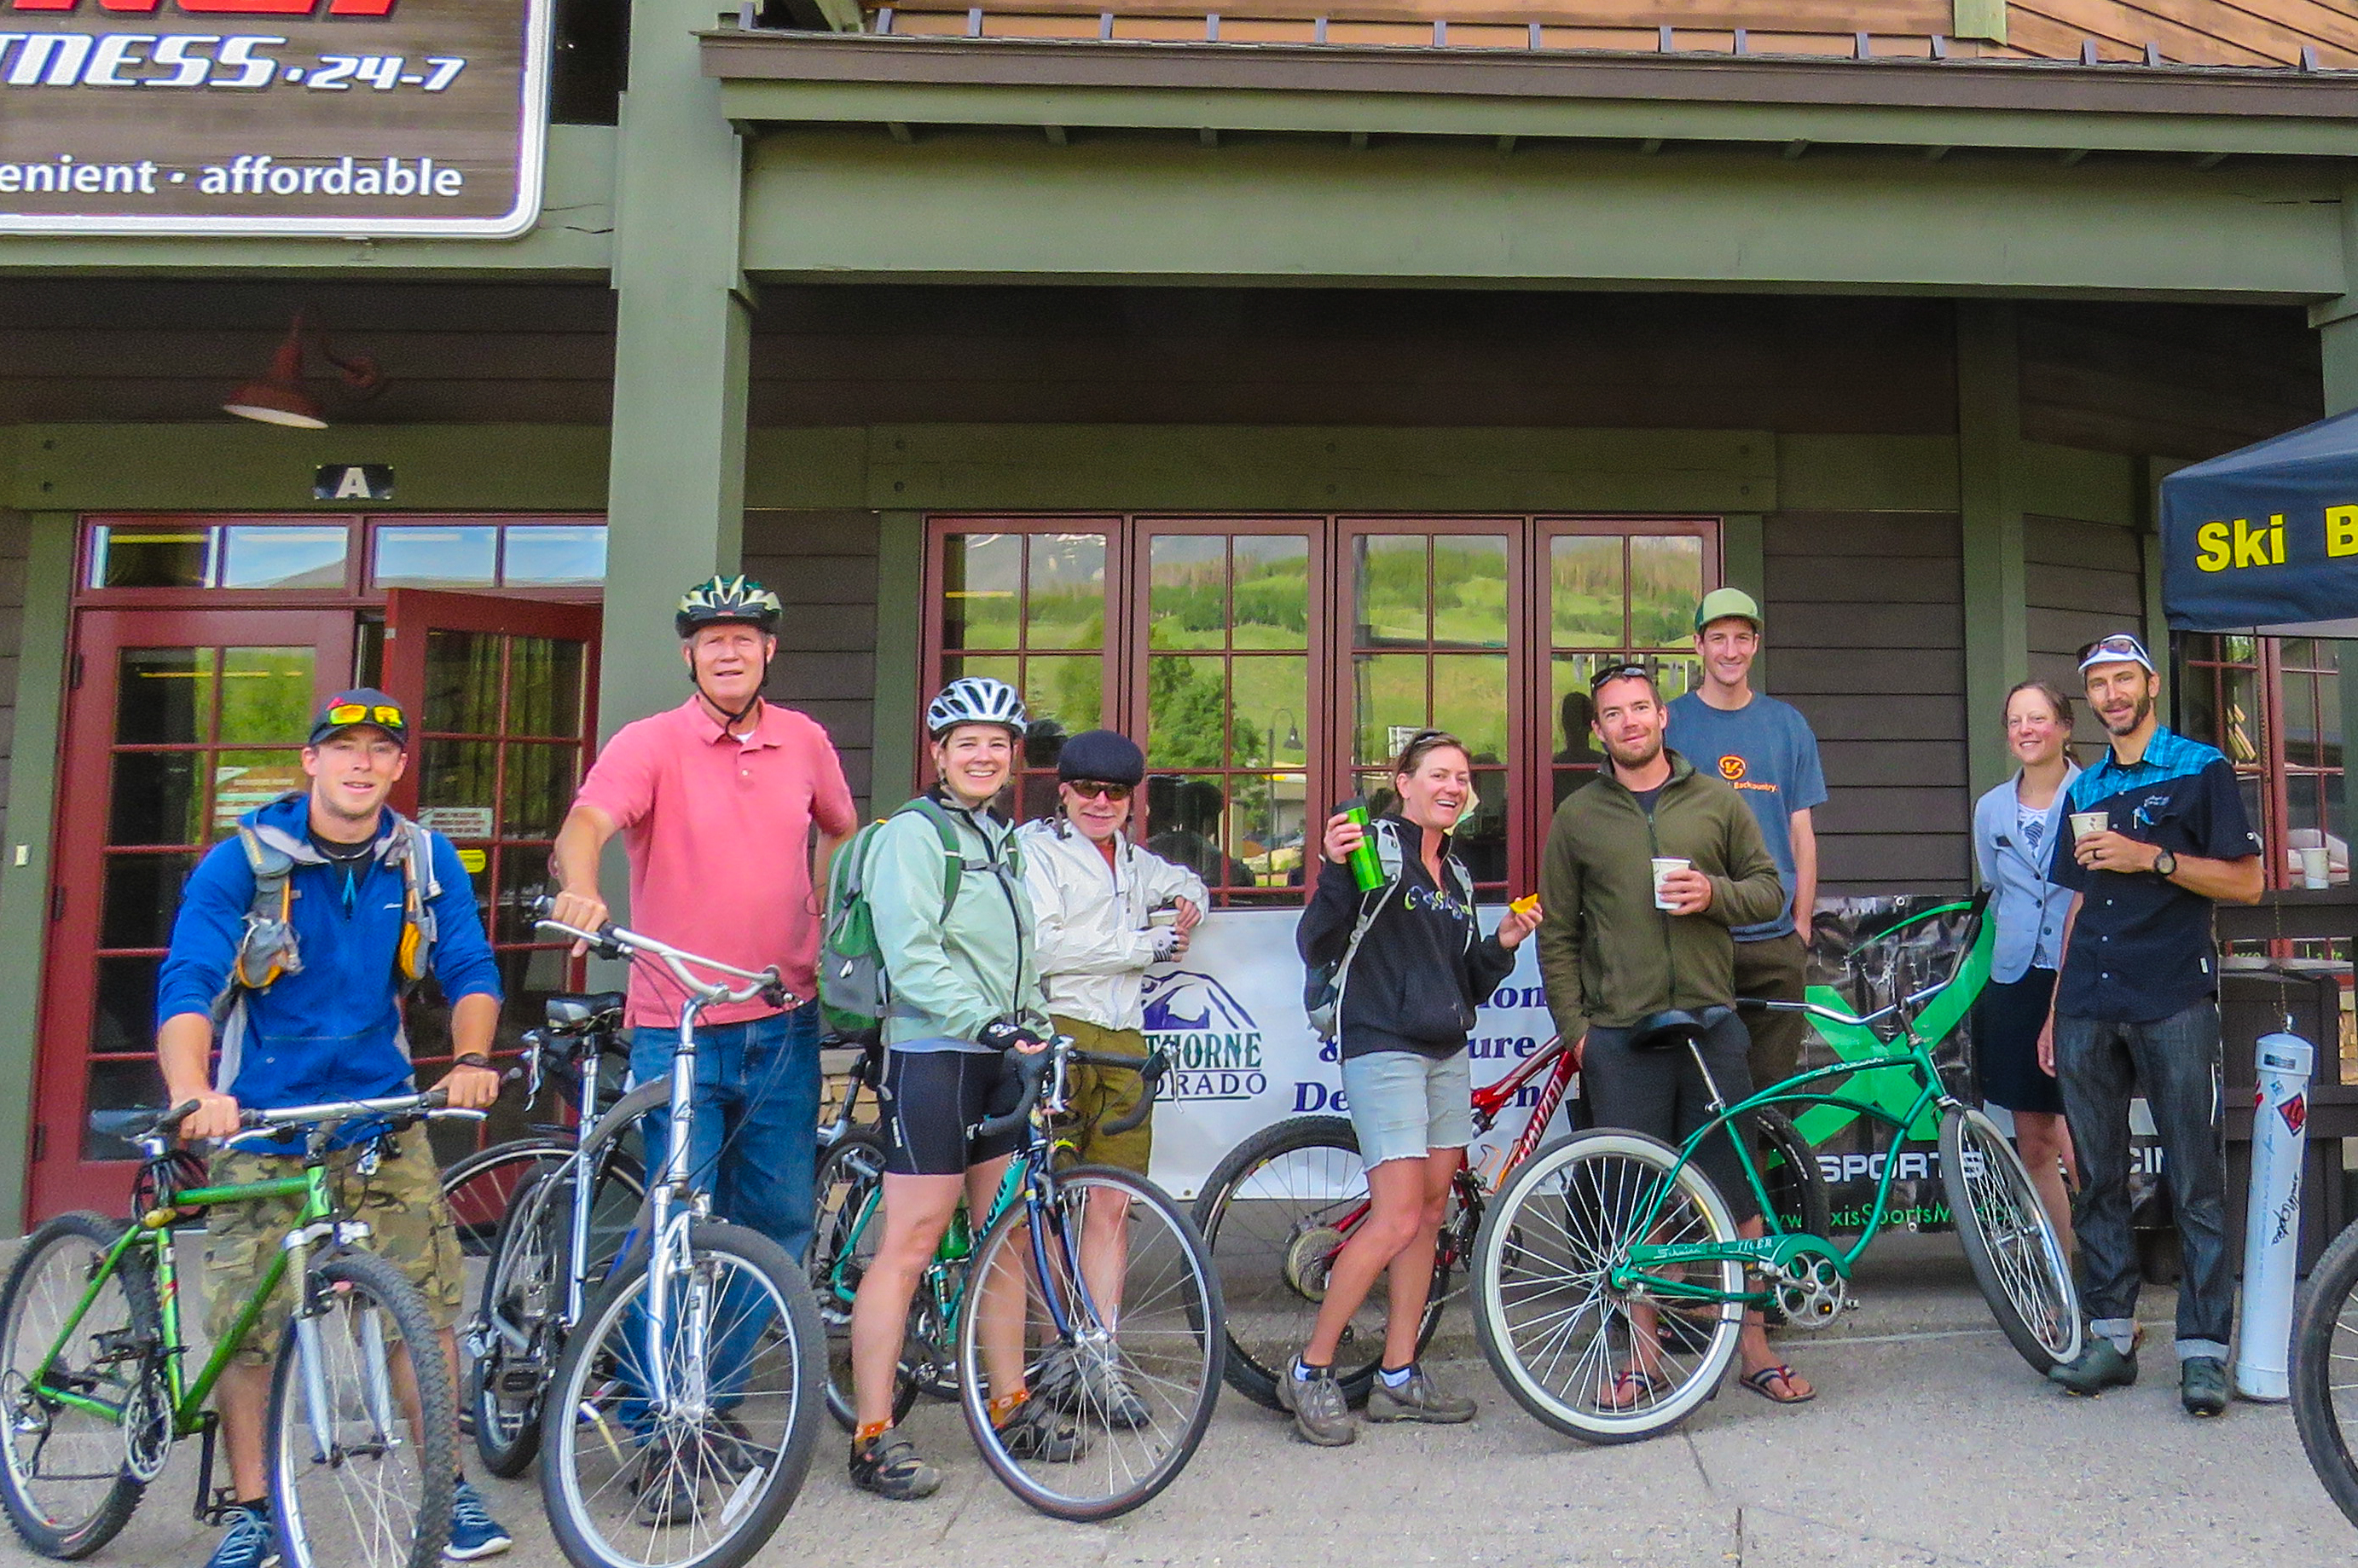 Photo of nine cyclists in front of a building, where they have ridden to work.